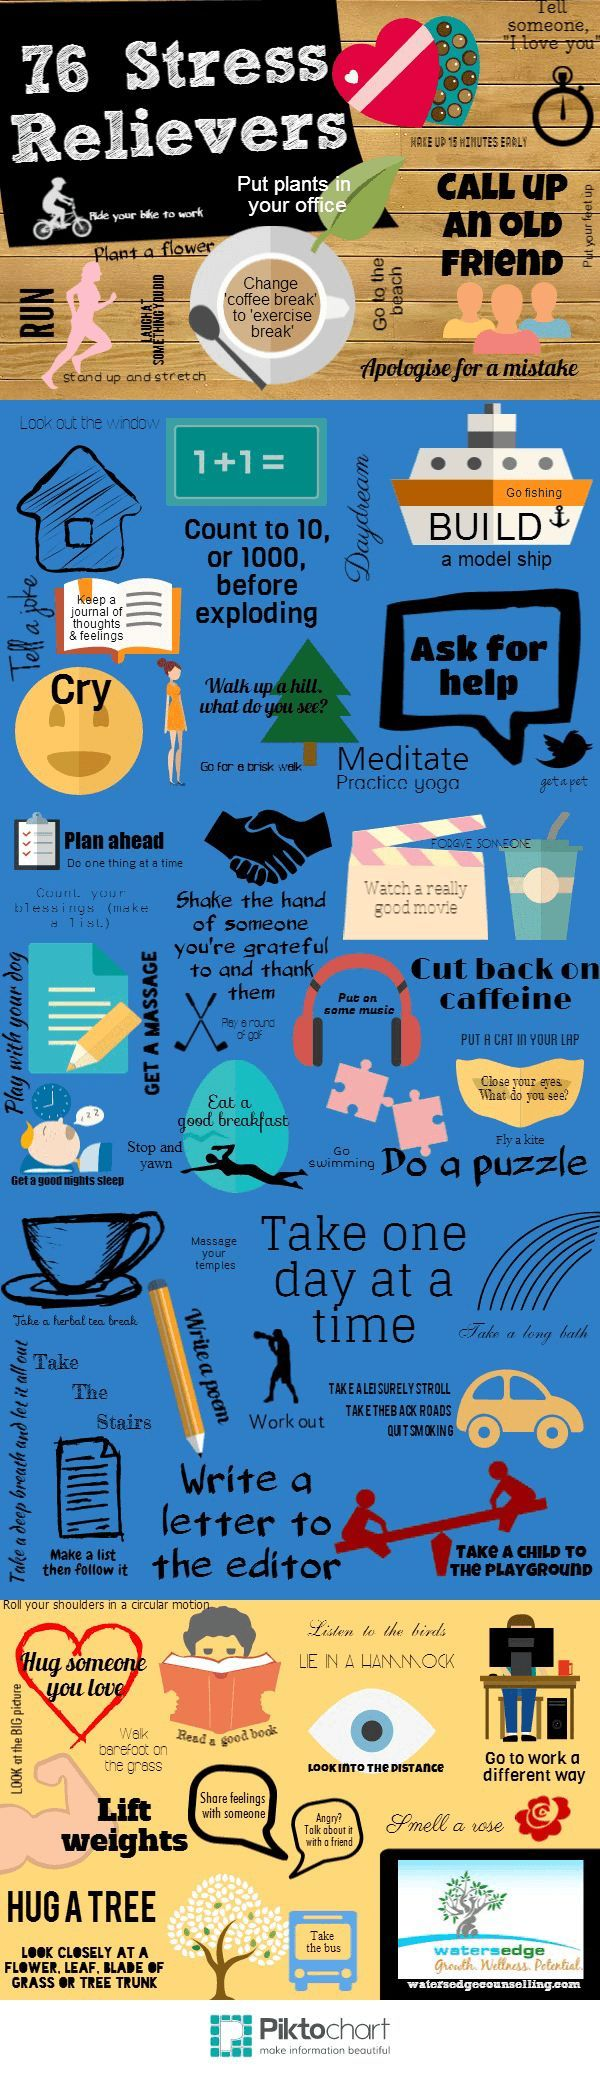 76 Stress Relievers